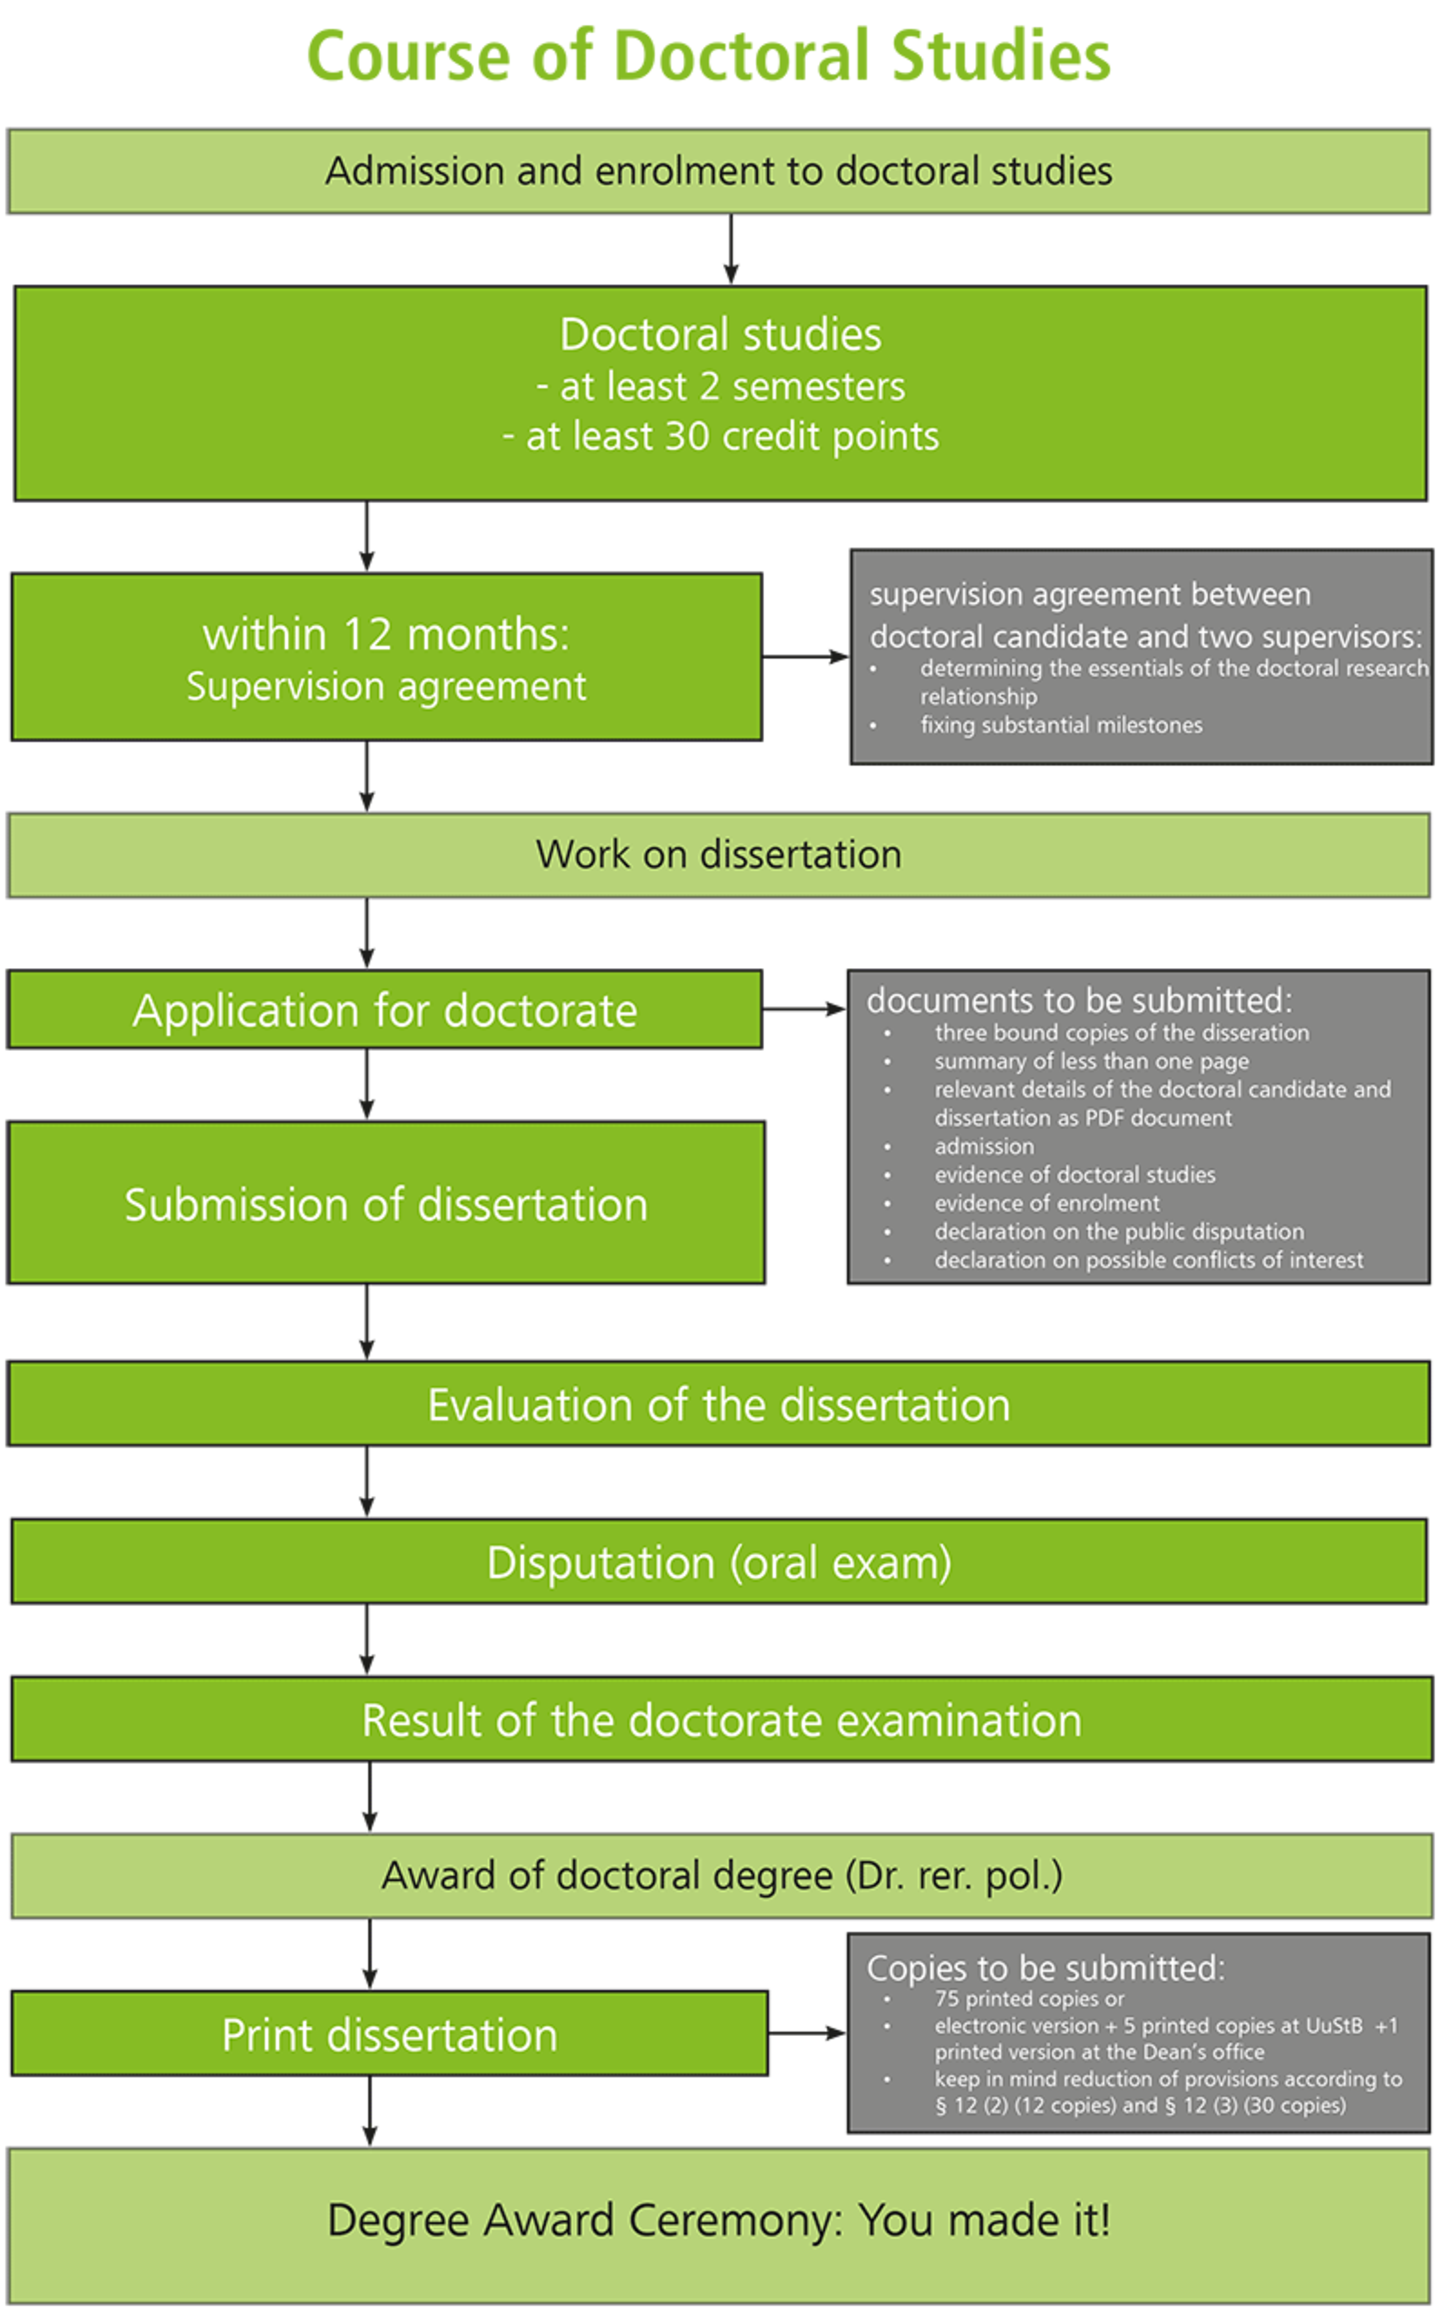 Overview graphic of th ecours of doctoral studies at cgs